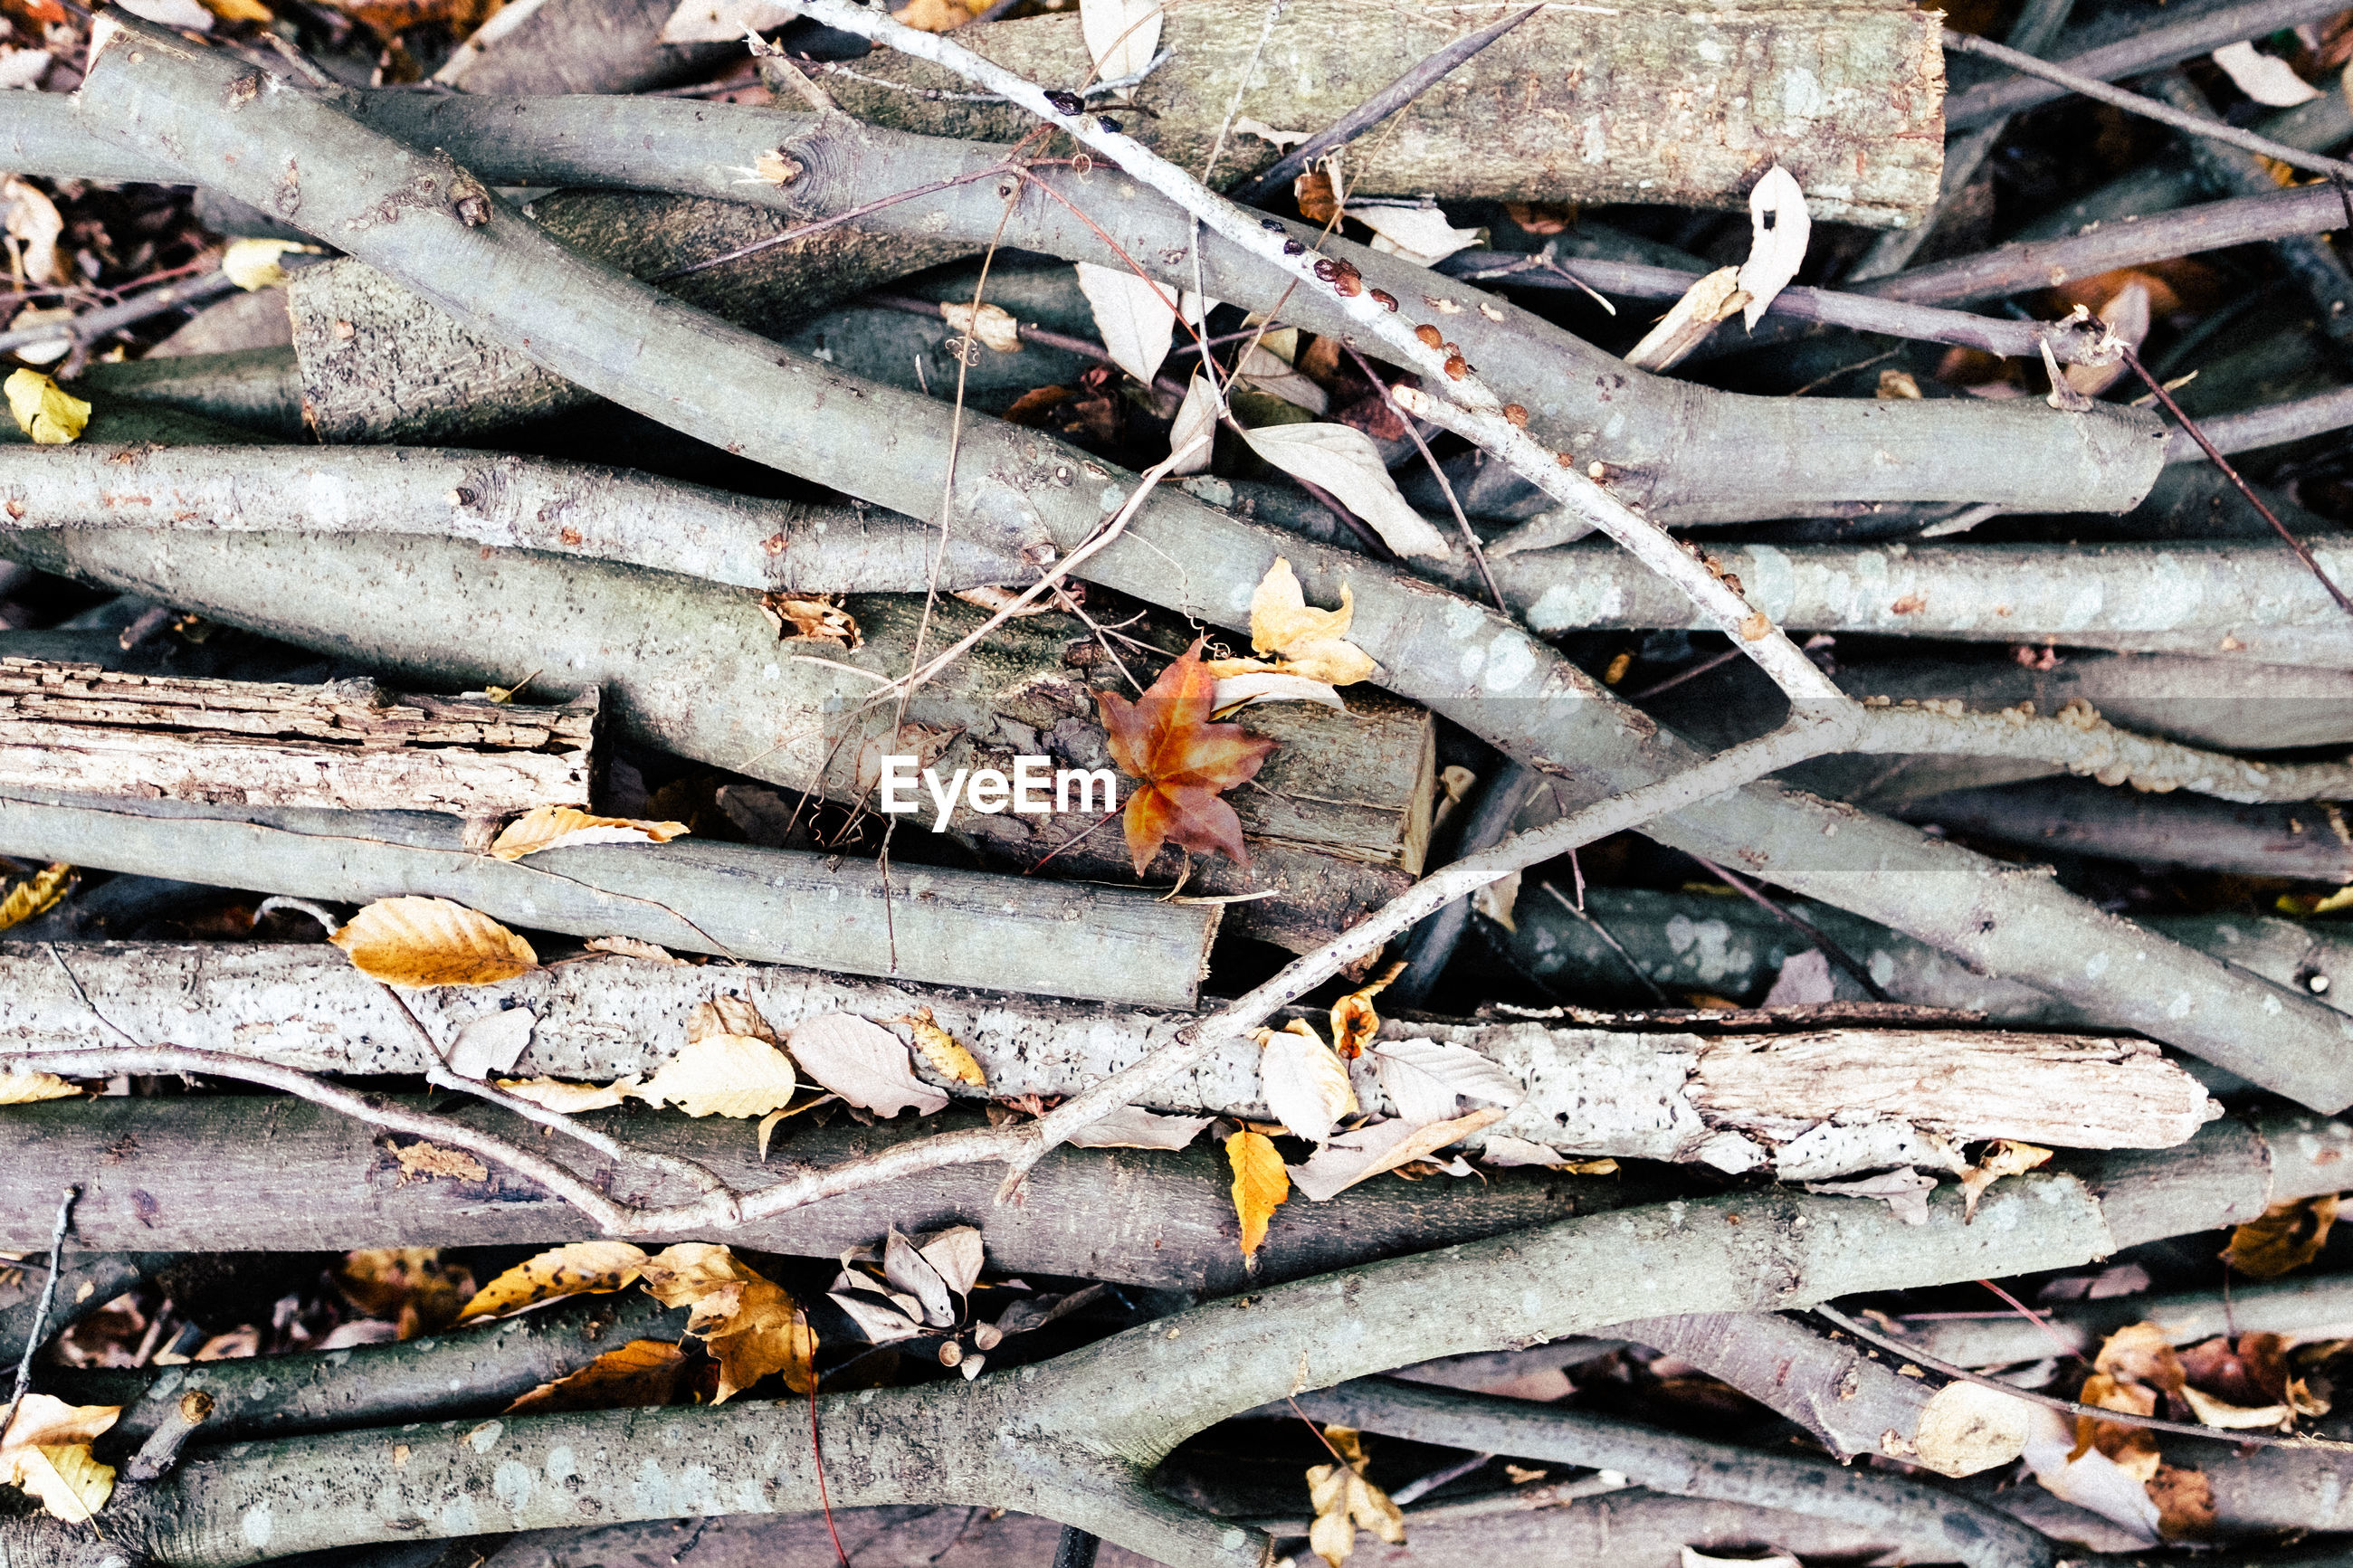 Full frame shot of logs and sticks with autumn leaves